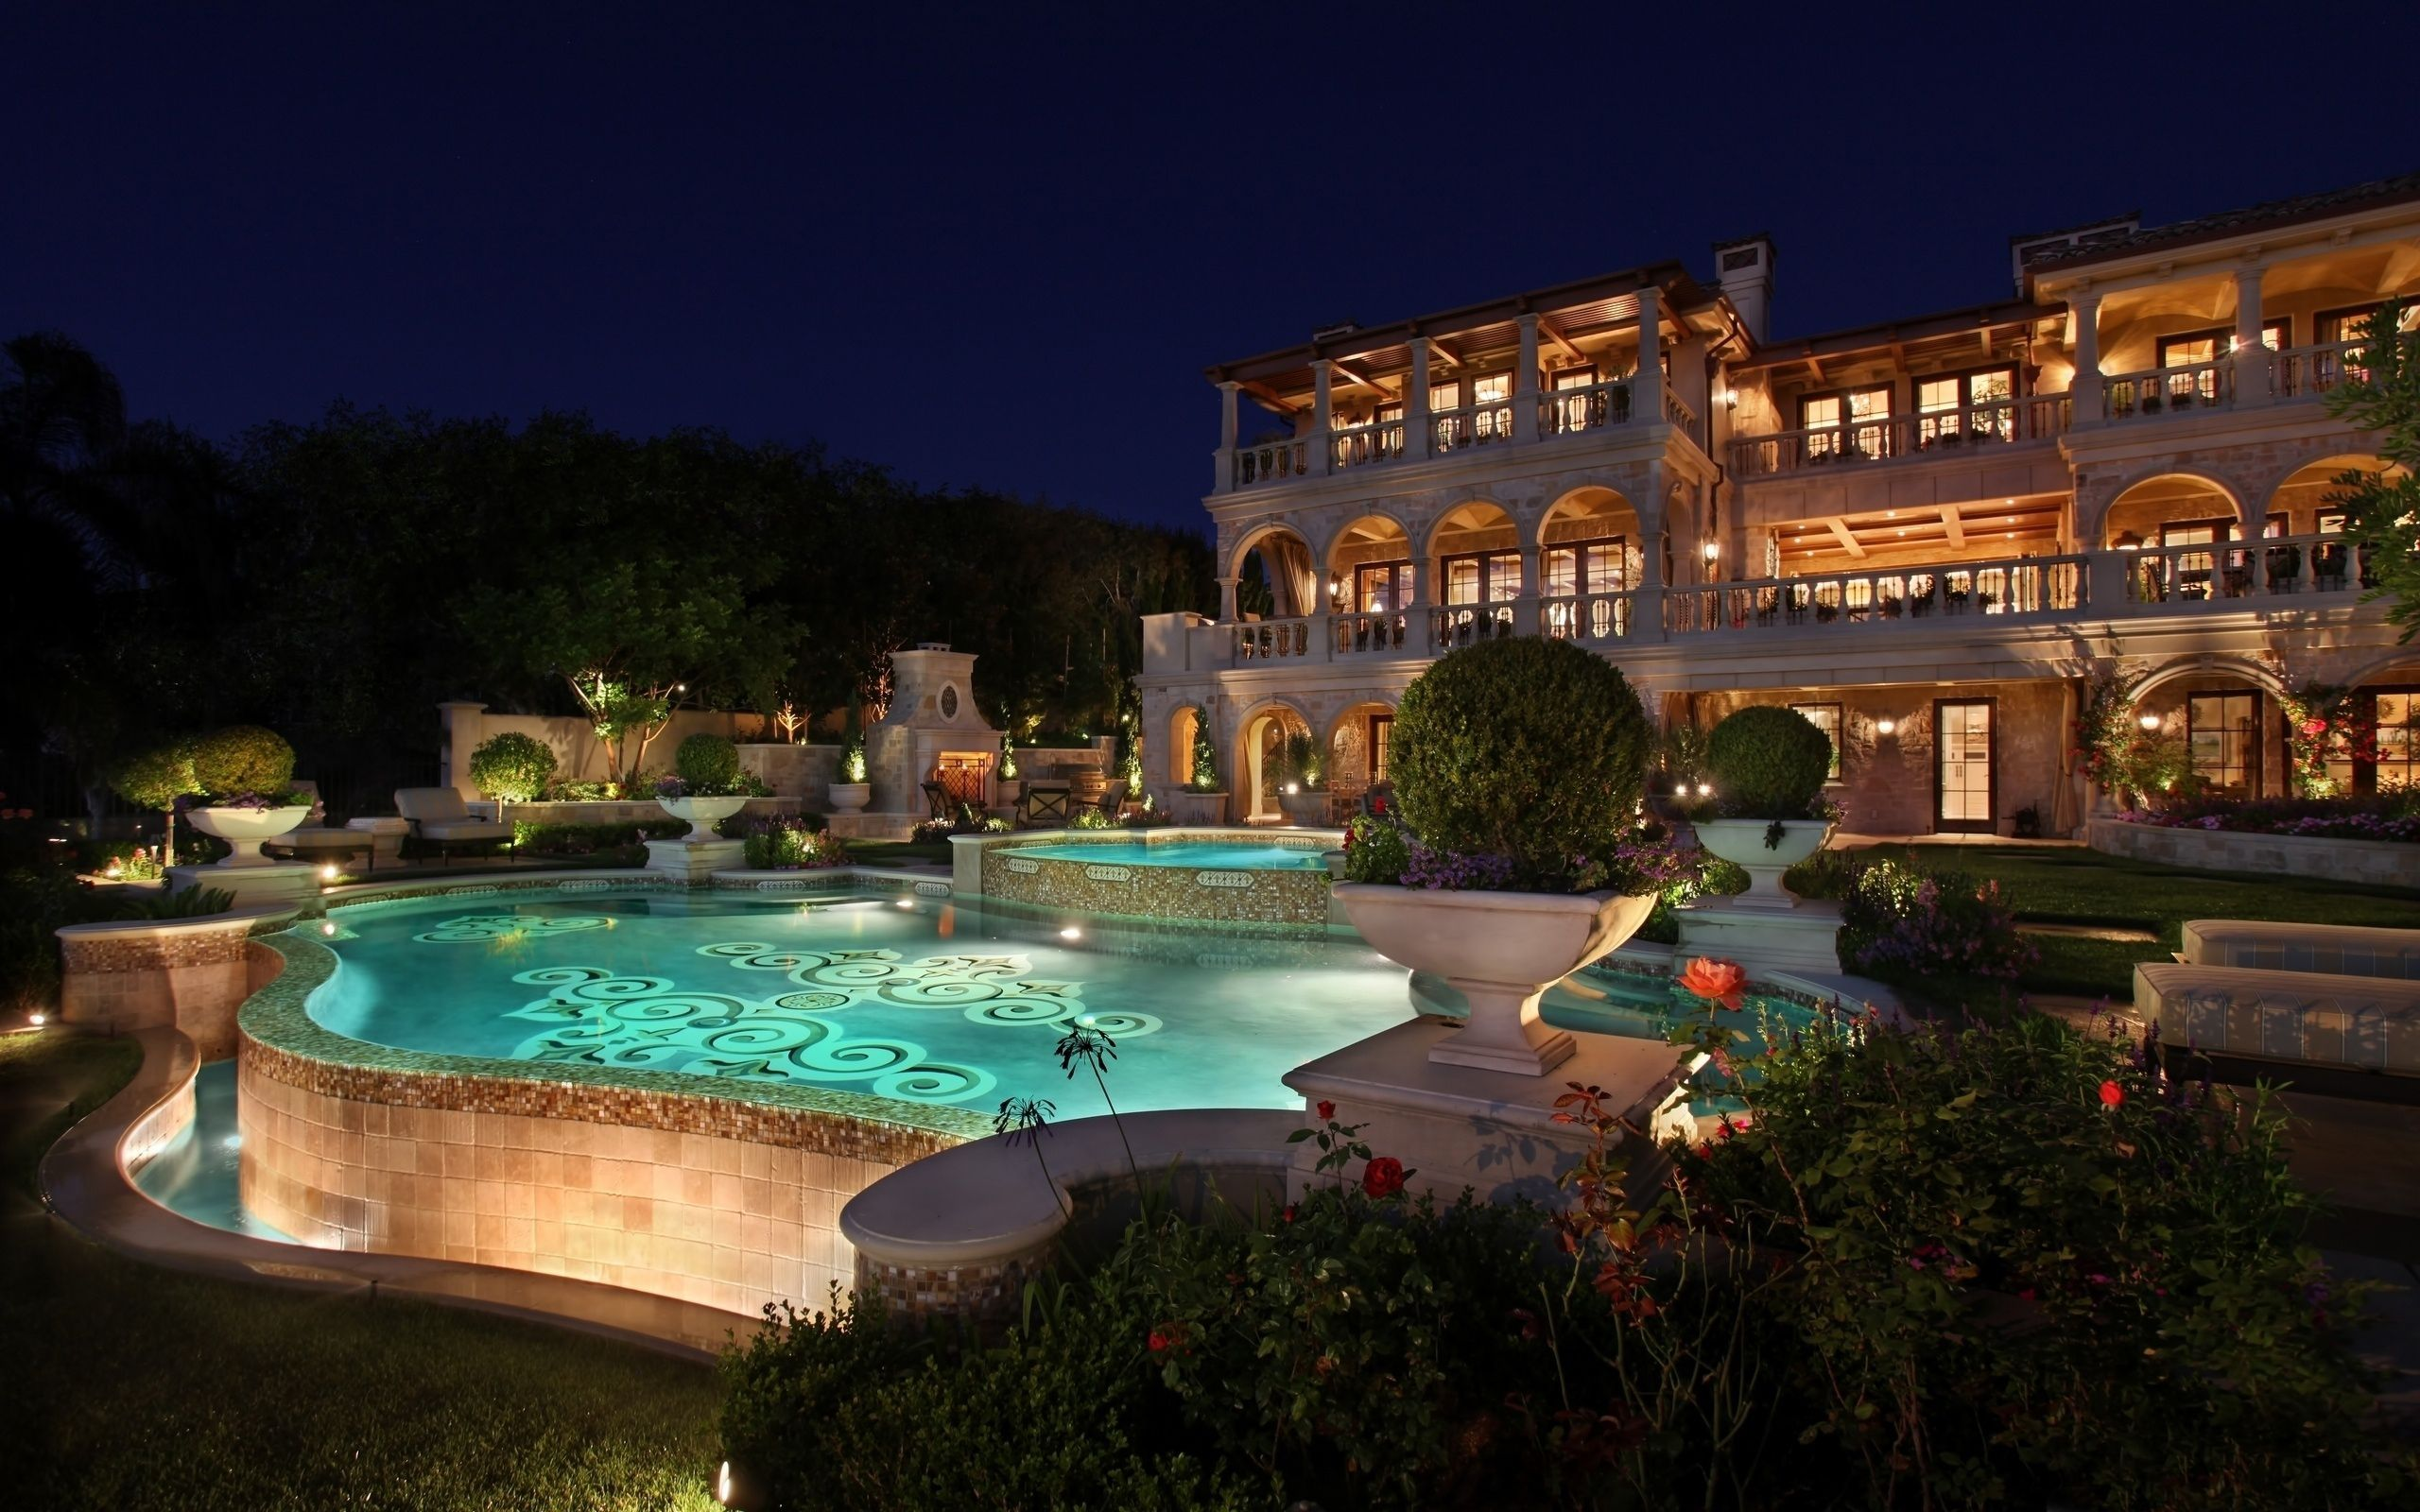 Mansion with pool at night  Mansion Wallpaper Hd Awesome Decoration 5 On Luxury Design Ideas ...